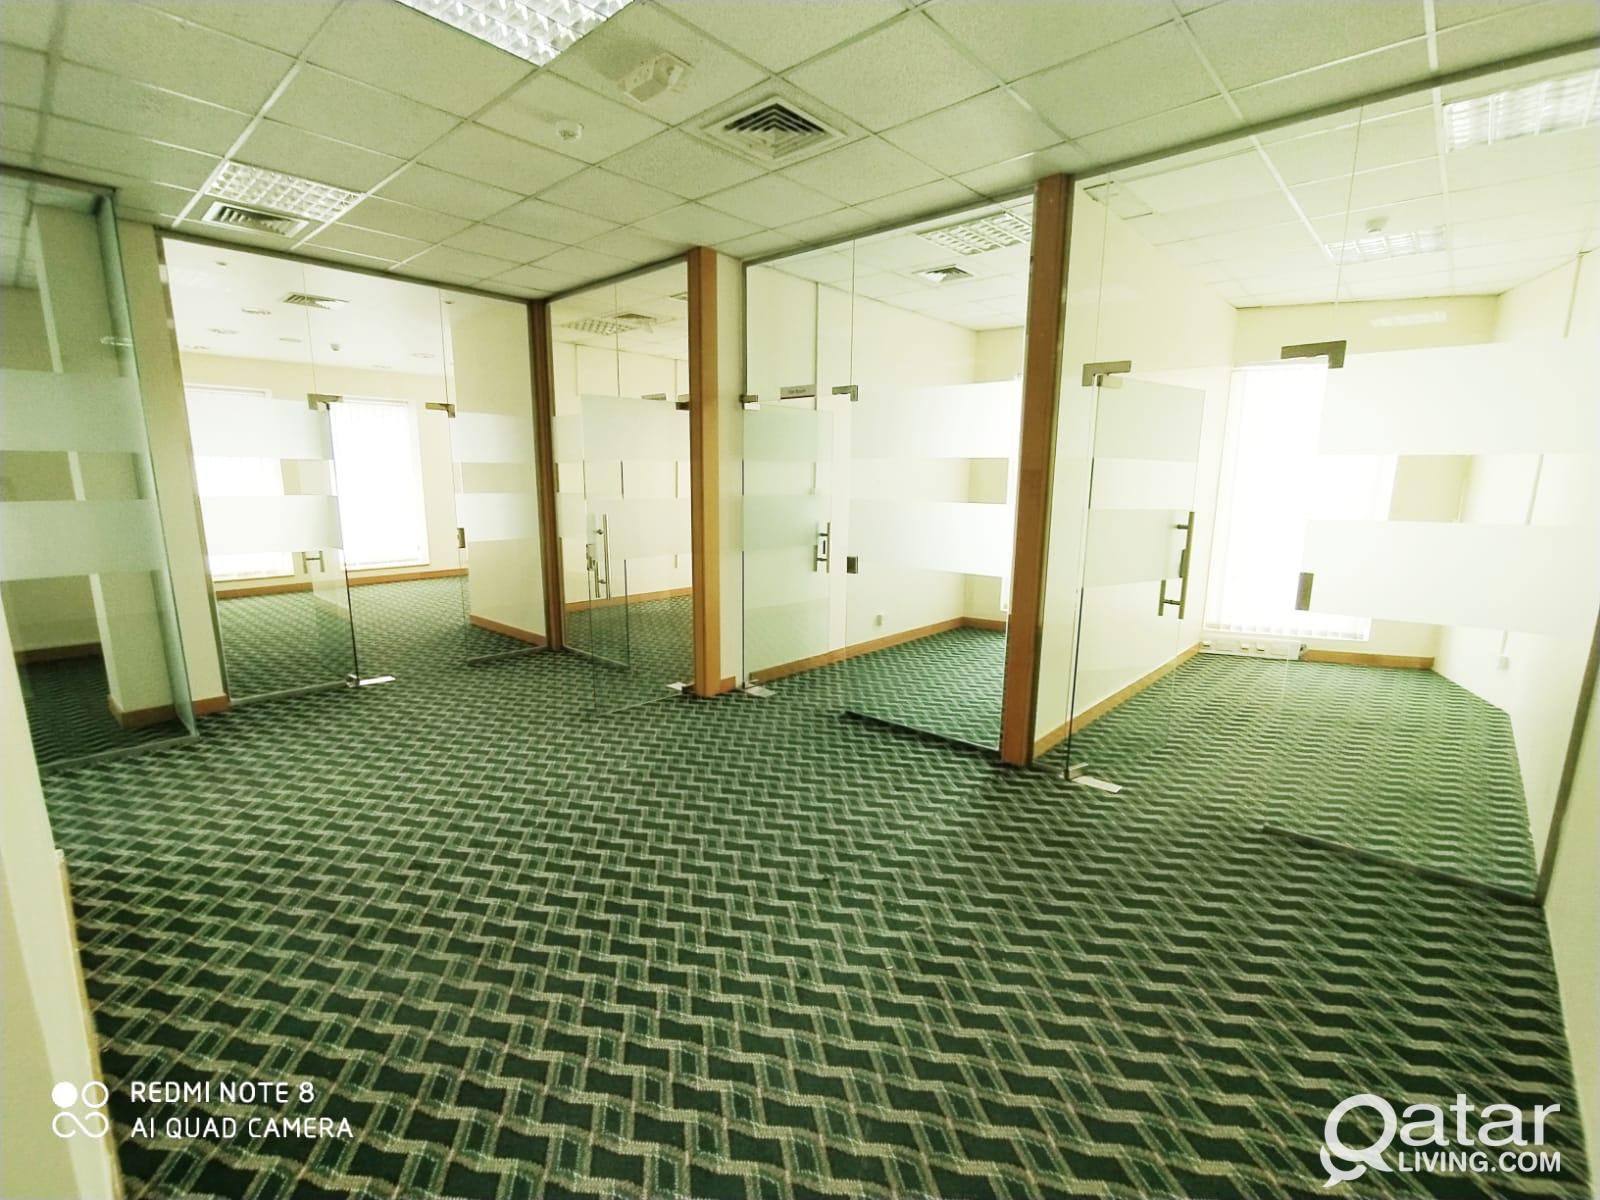 152 Sqm 4 Rooms Glass Partitioned Office in Airpor